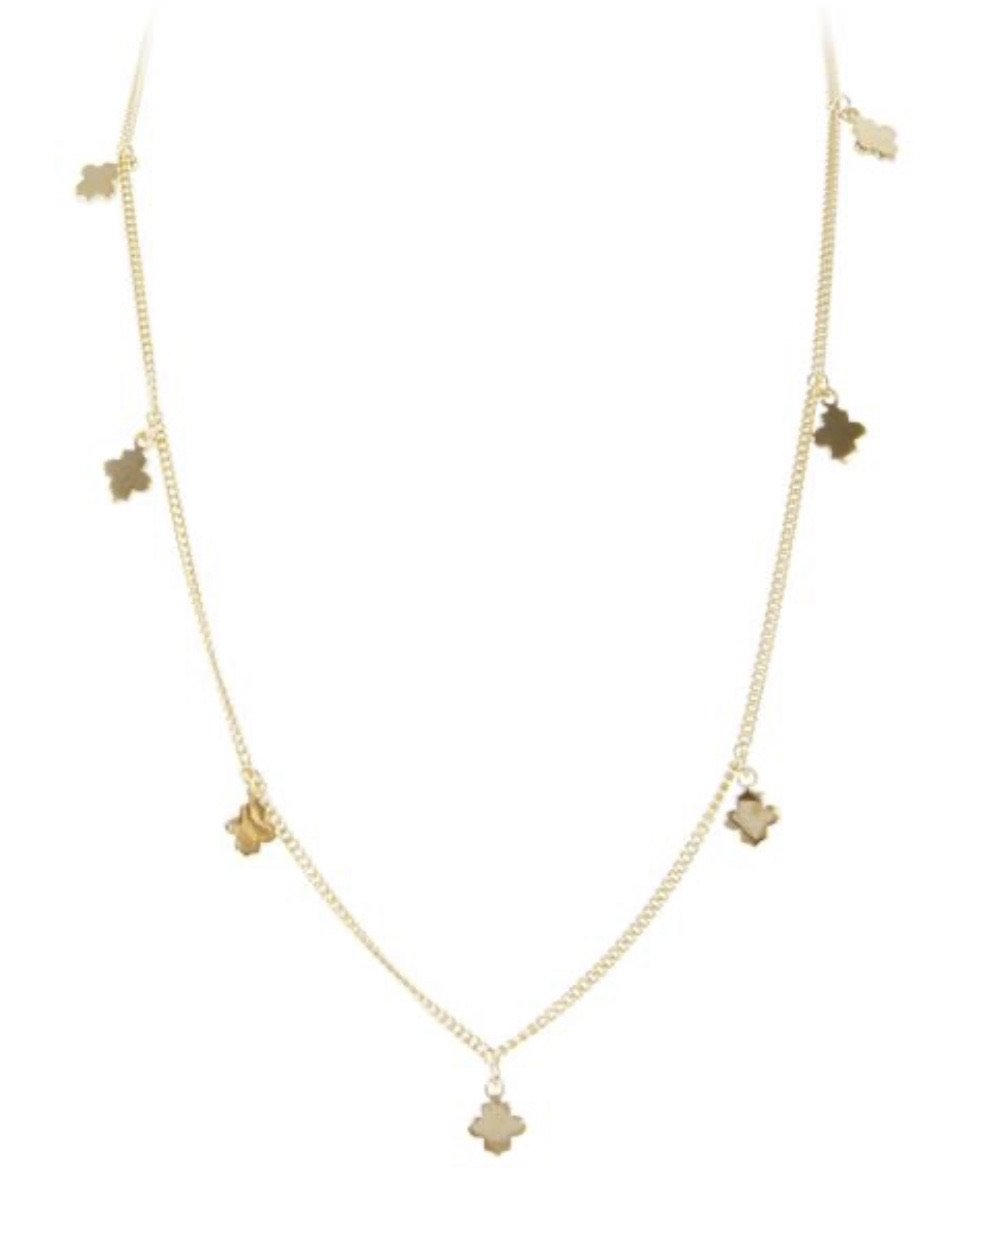 Gold Clover Charm Necklace by Fairley